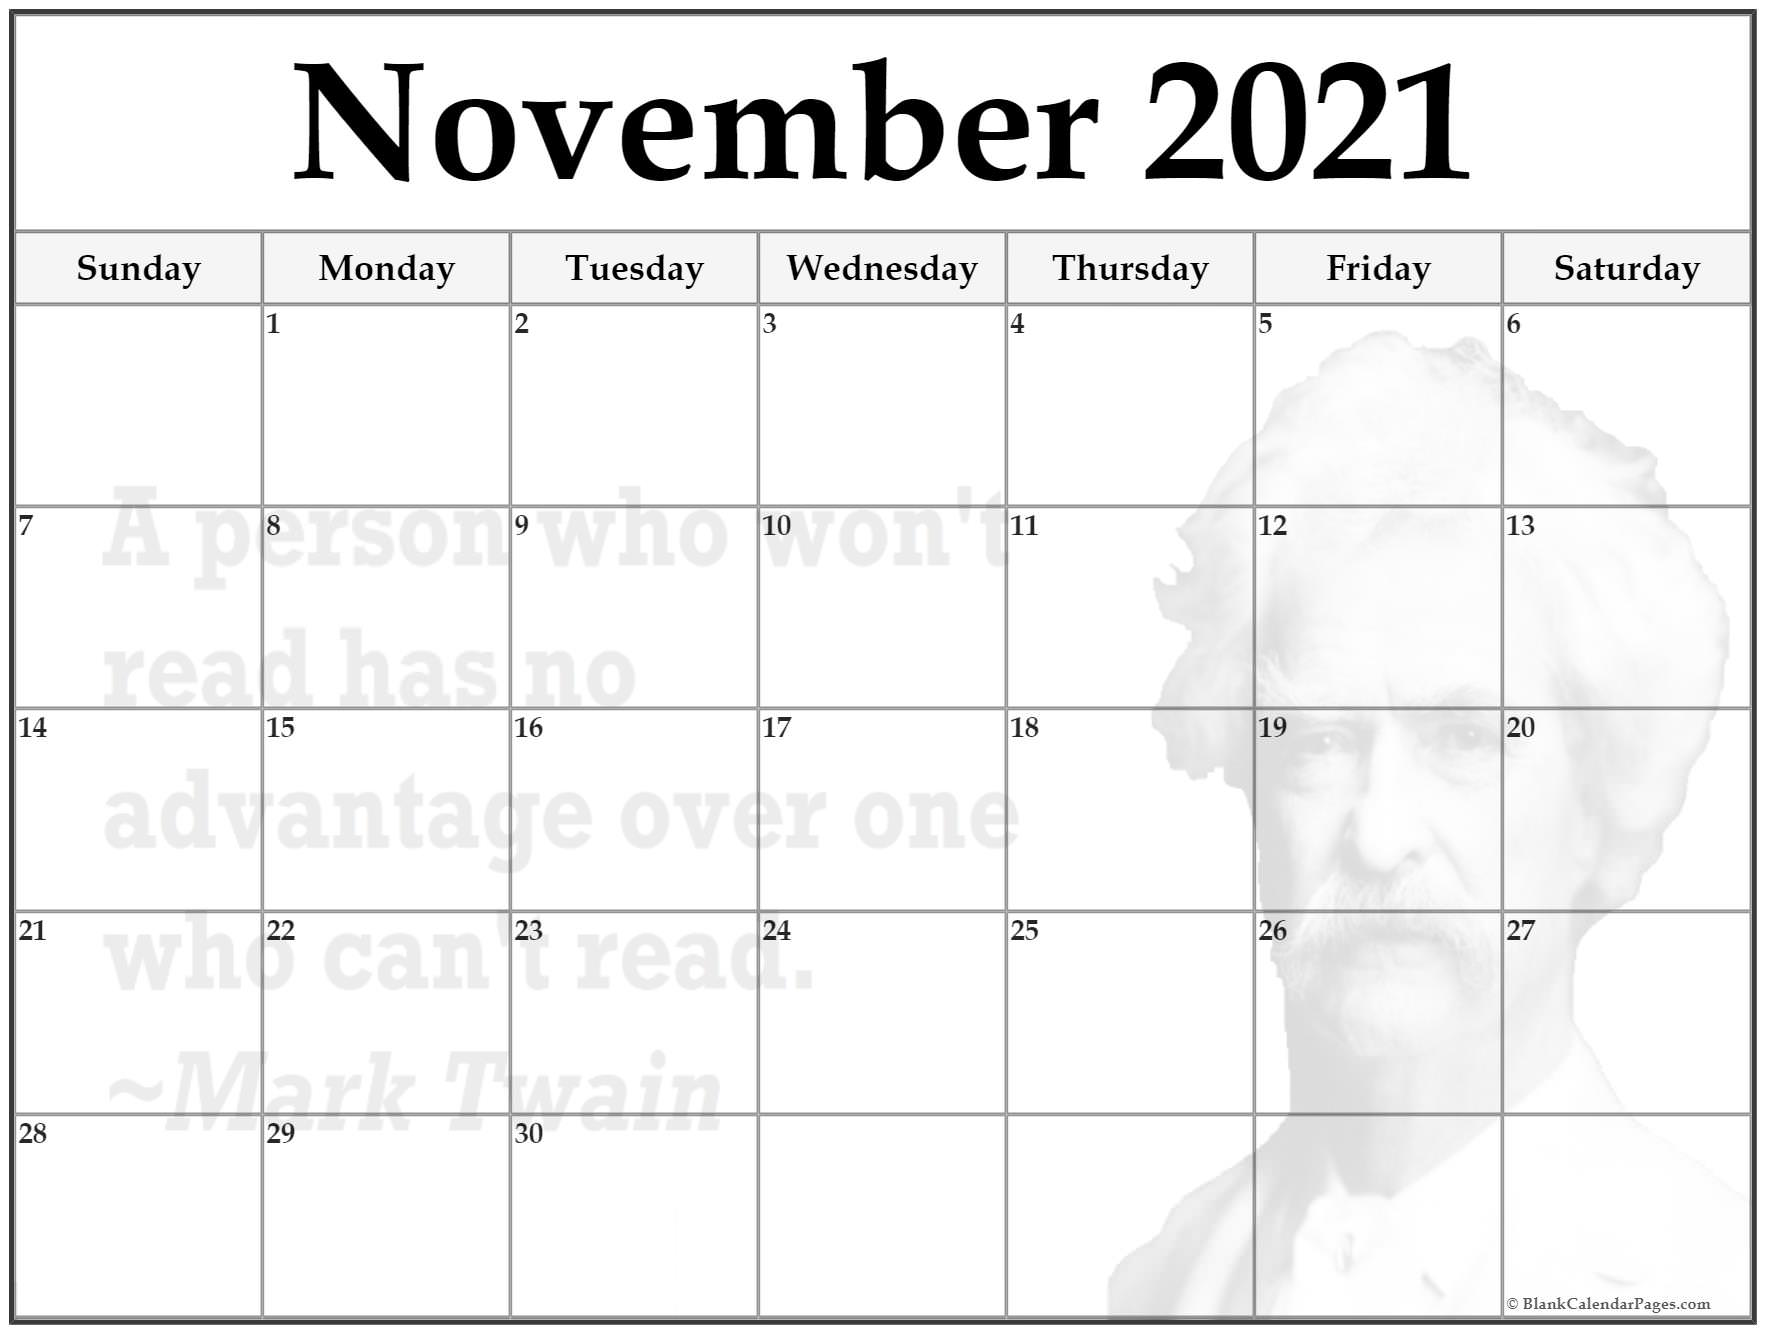 November 2020 printable quote calendar template. A person who won't read has no advantage over a person who can't read. ~Mark Twain